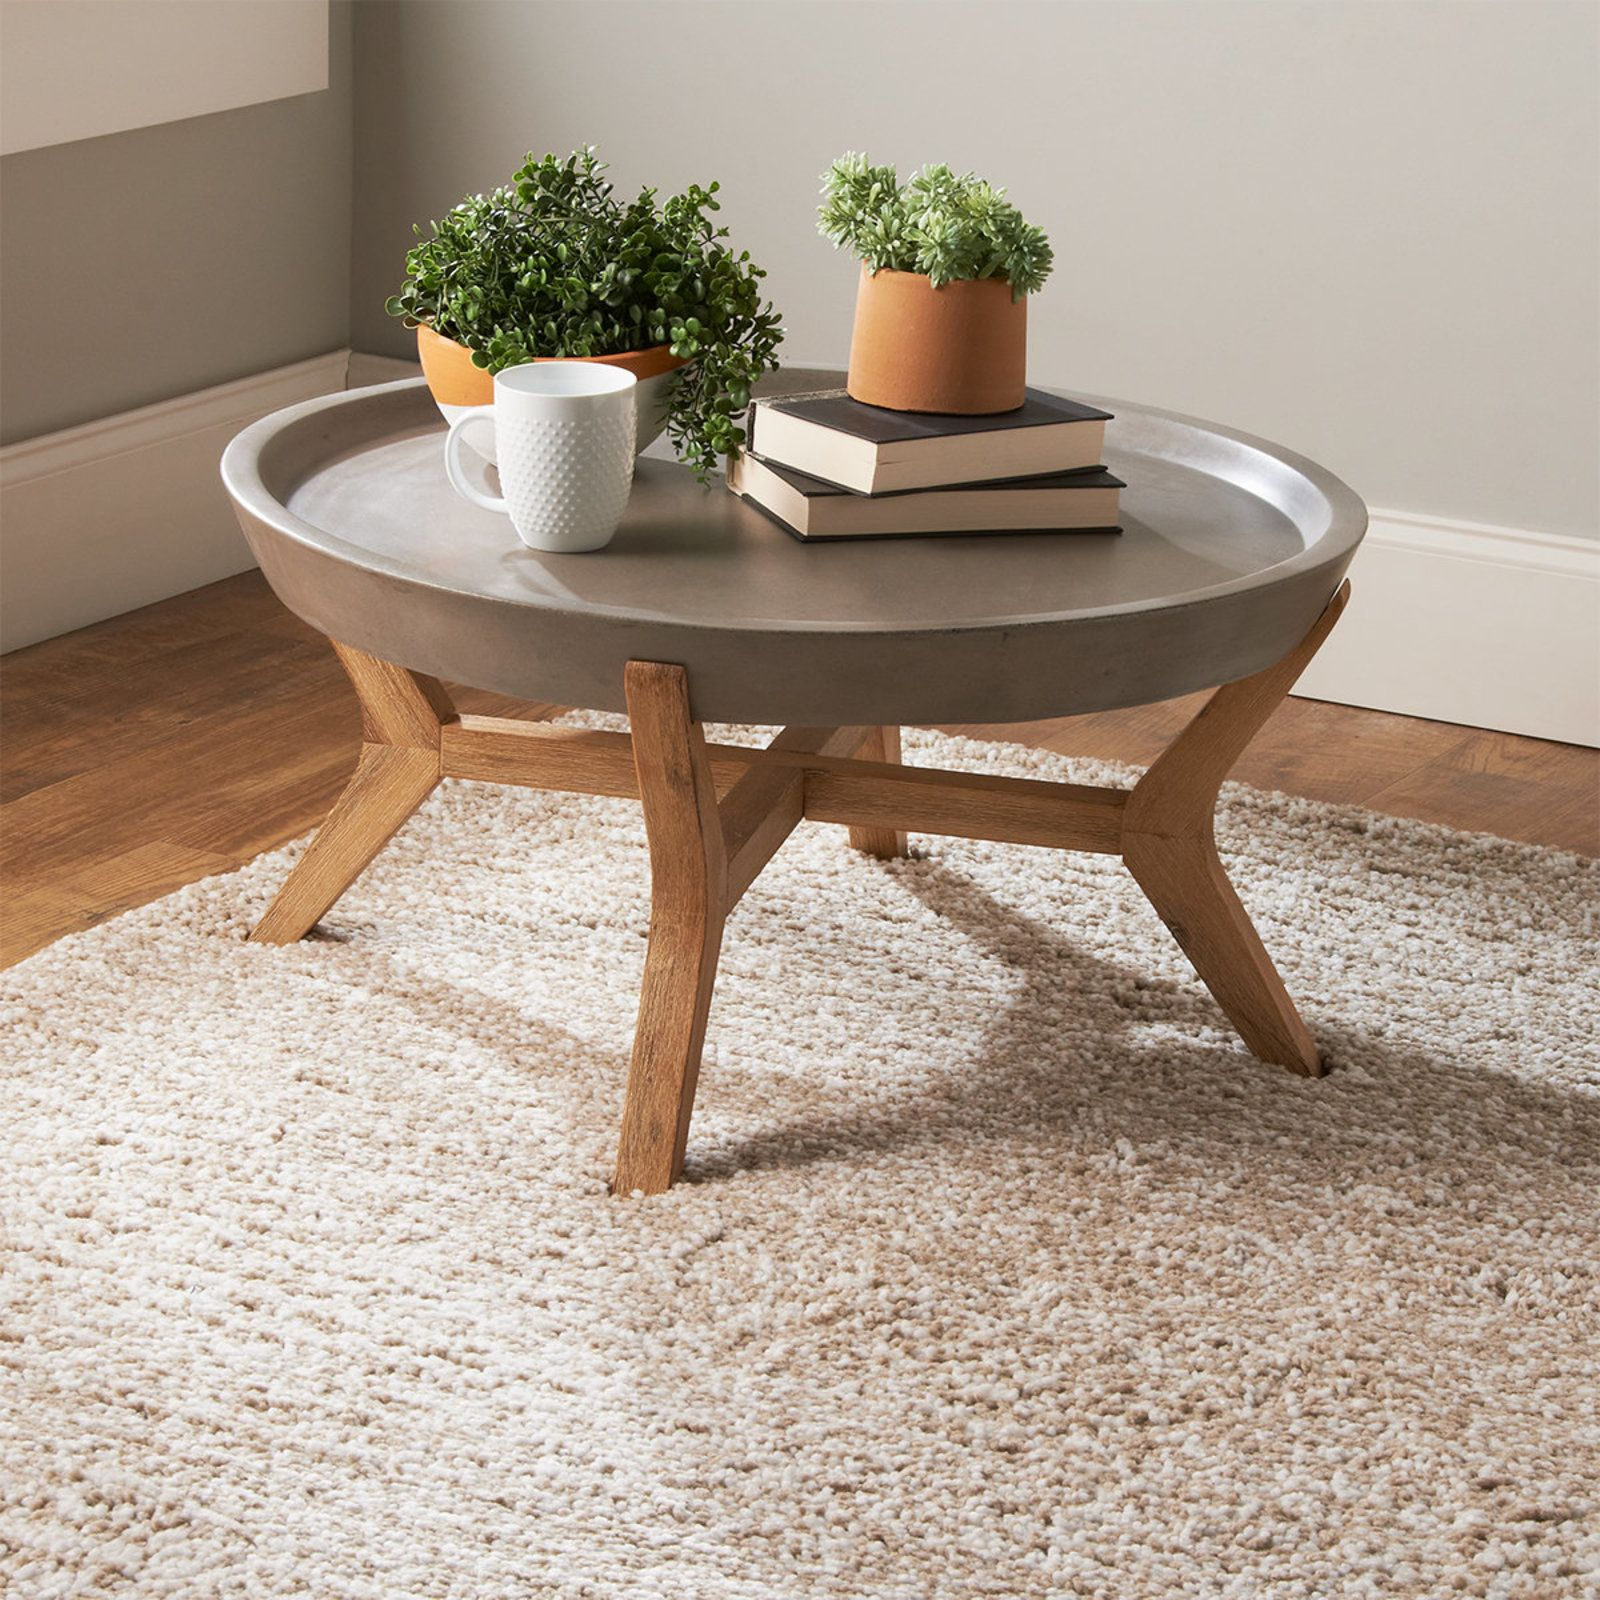 Arteriors Jacob Rustic Lodge White Washed Wood Coffee Table Round Wood Coffee Table Coffee Table Wood Solid Wood Coffee Table